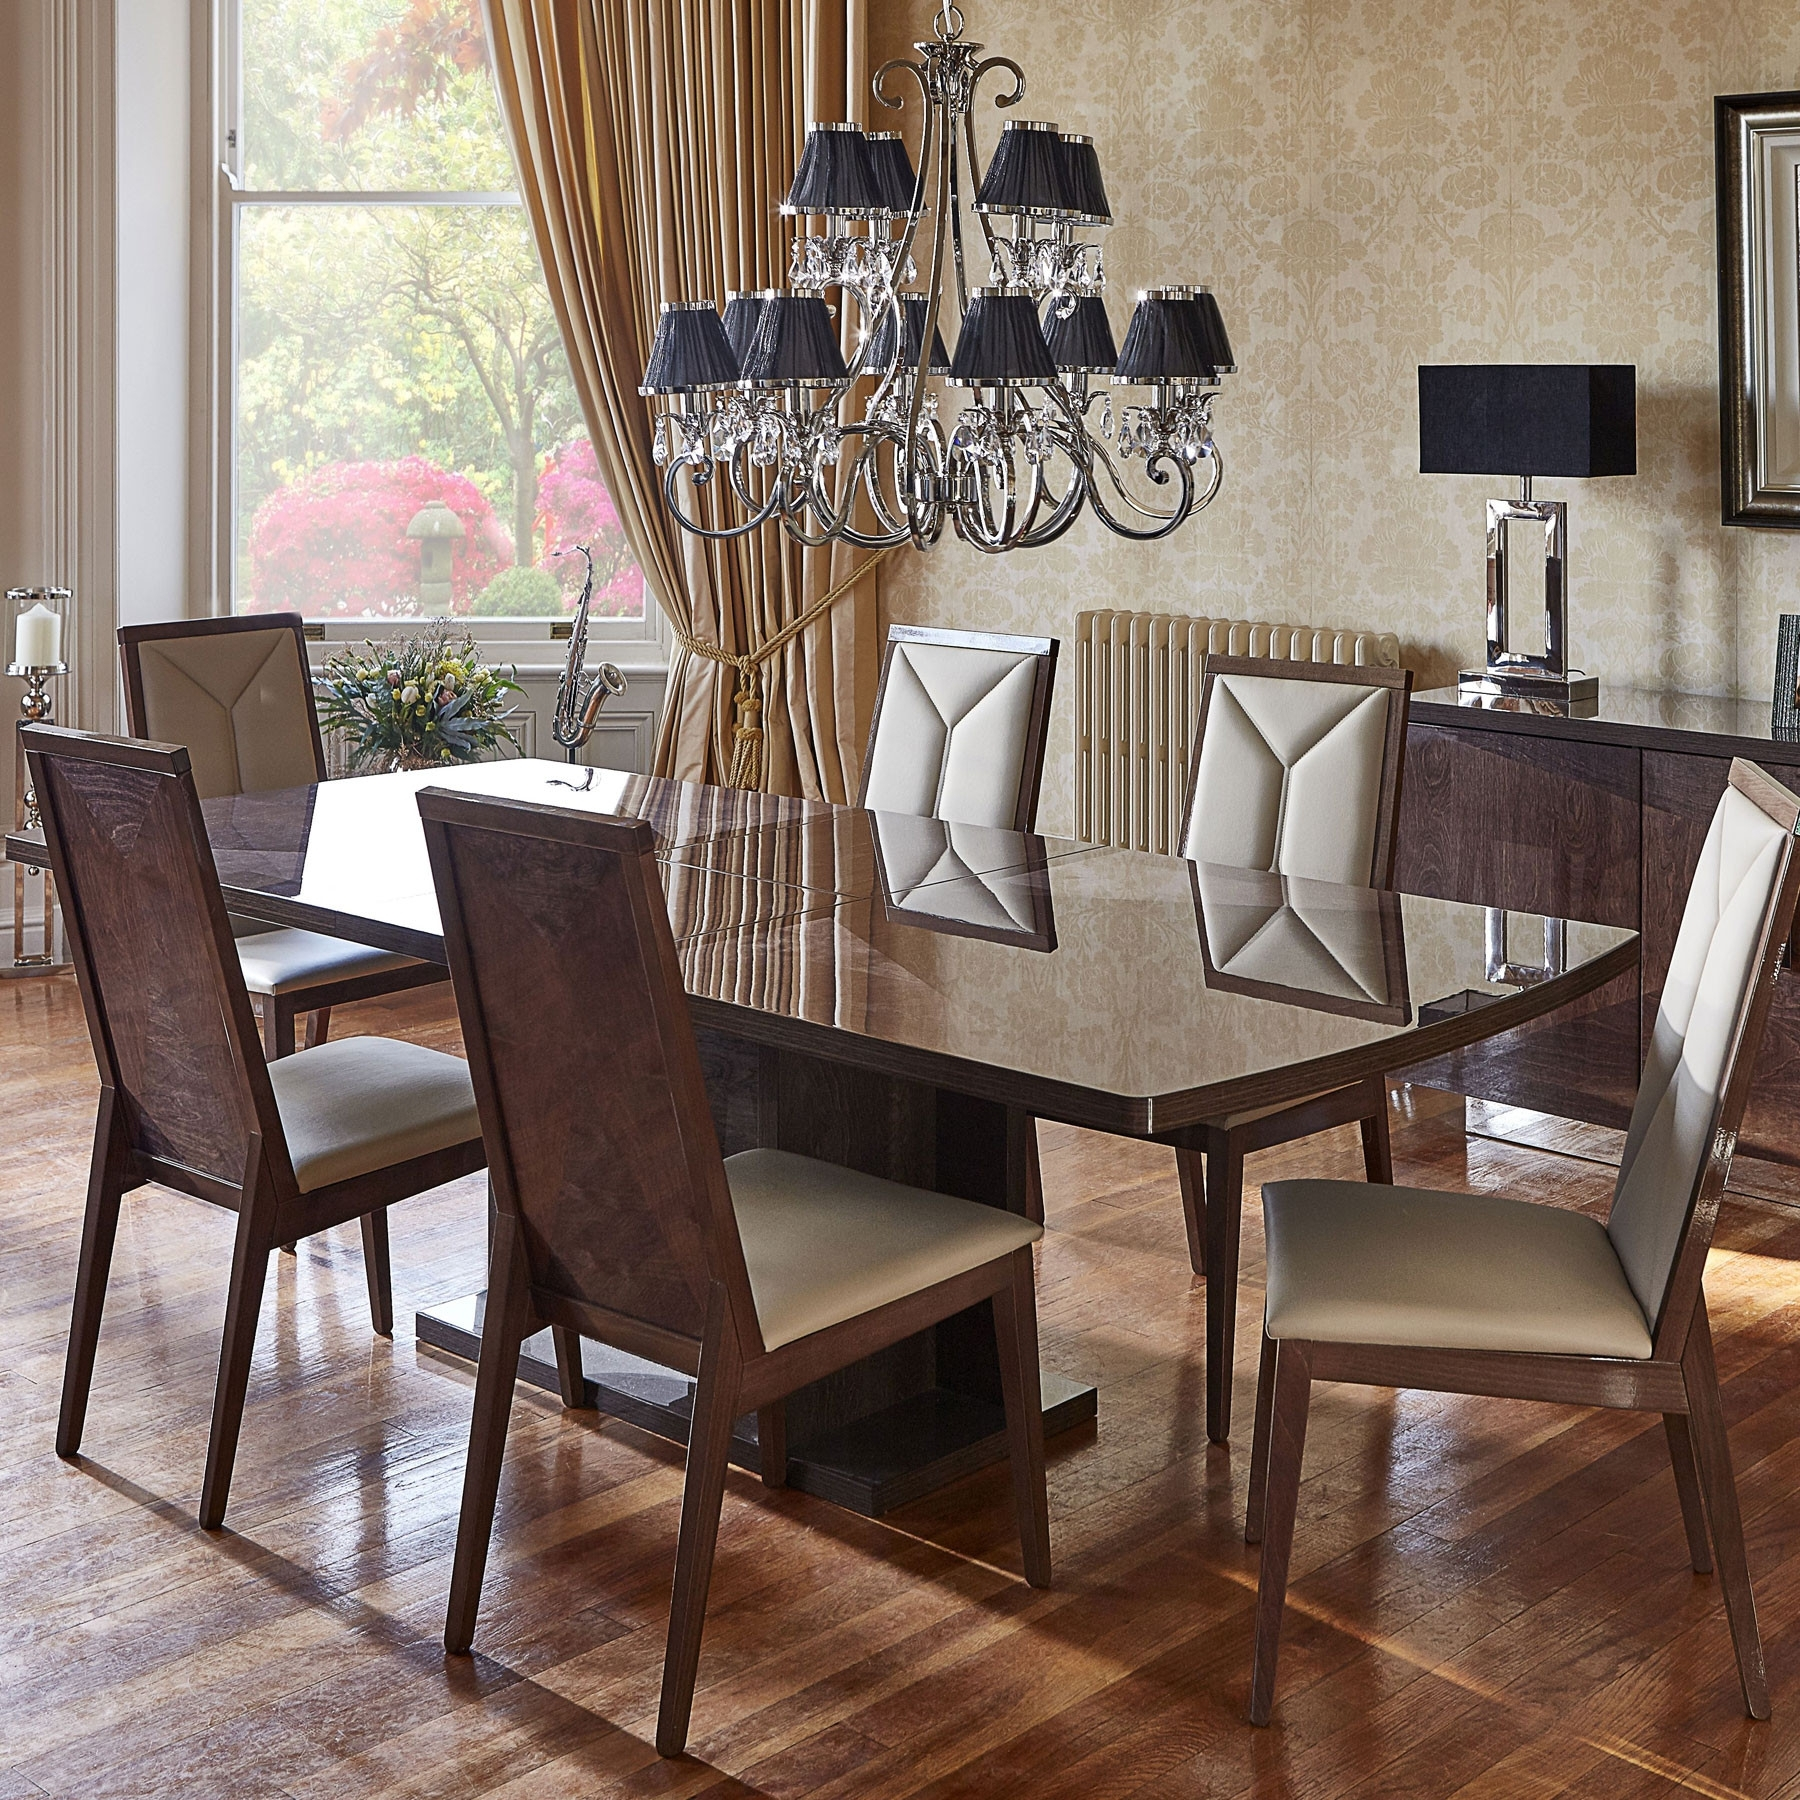 Vogue High Gloss Extending Dining Table & 6 Chairs Regarding Most Recently Released High Gloss Dining Tables (View 4 of 25)